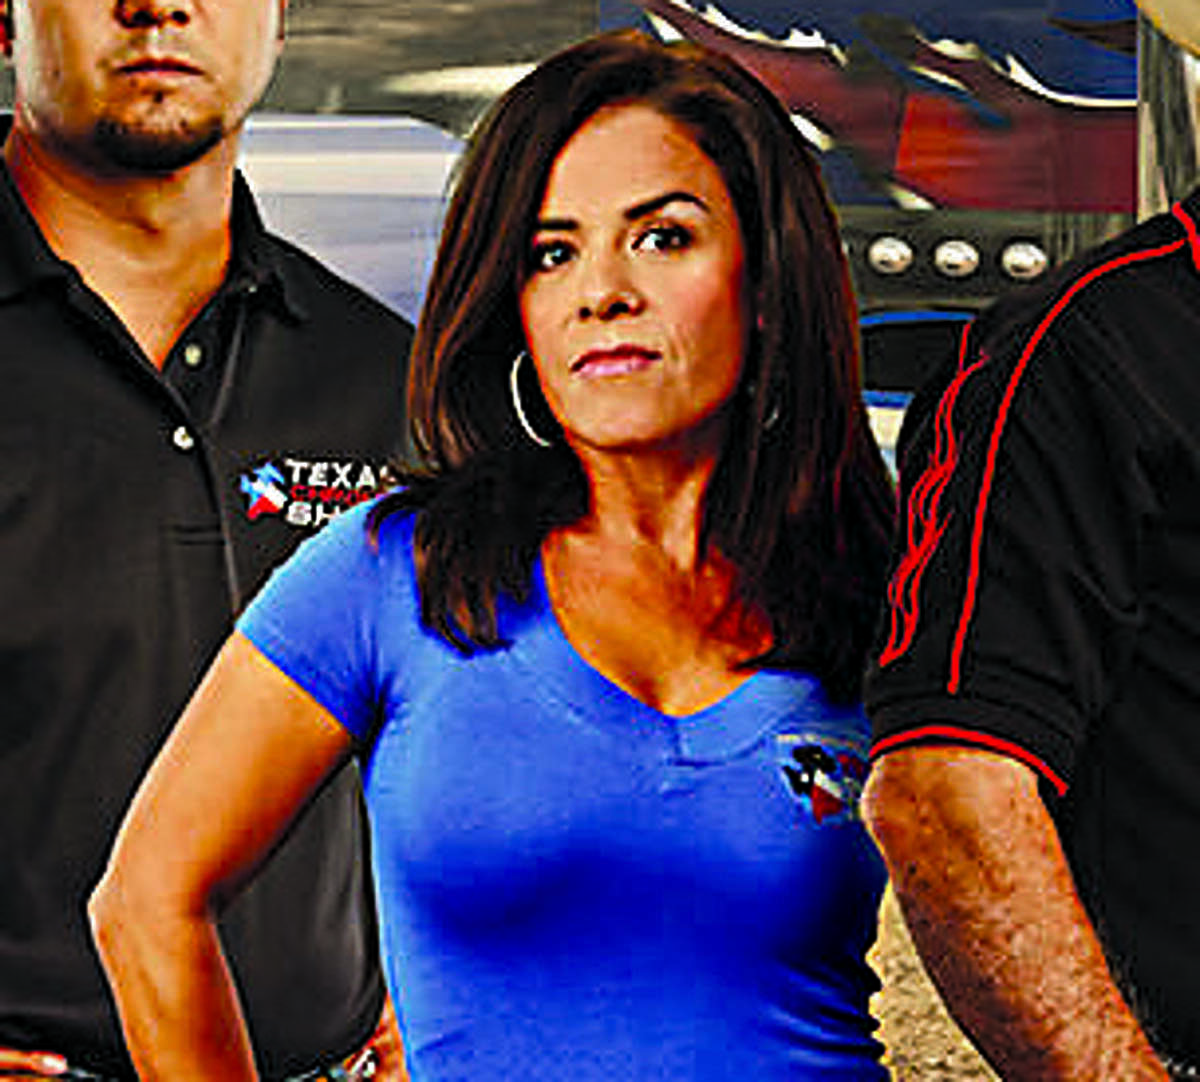 Lorena Mendez, who was featured on the Discovery en Español show, is the owner of Texas Chrome Transport Inc.